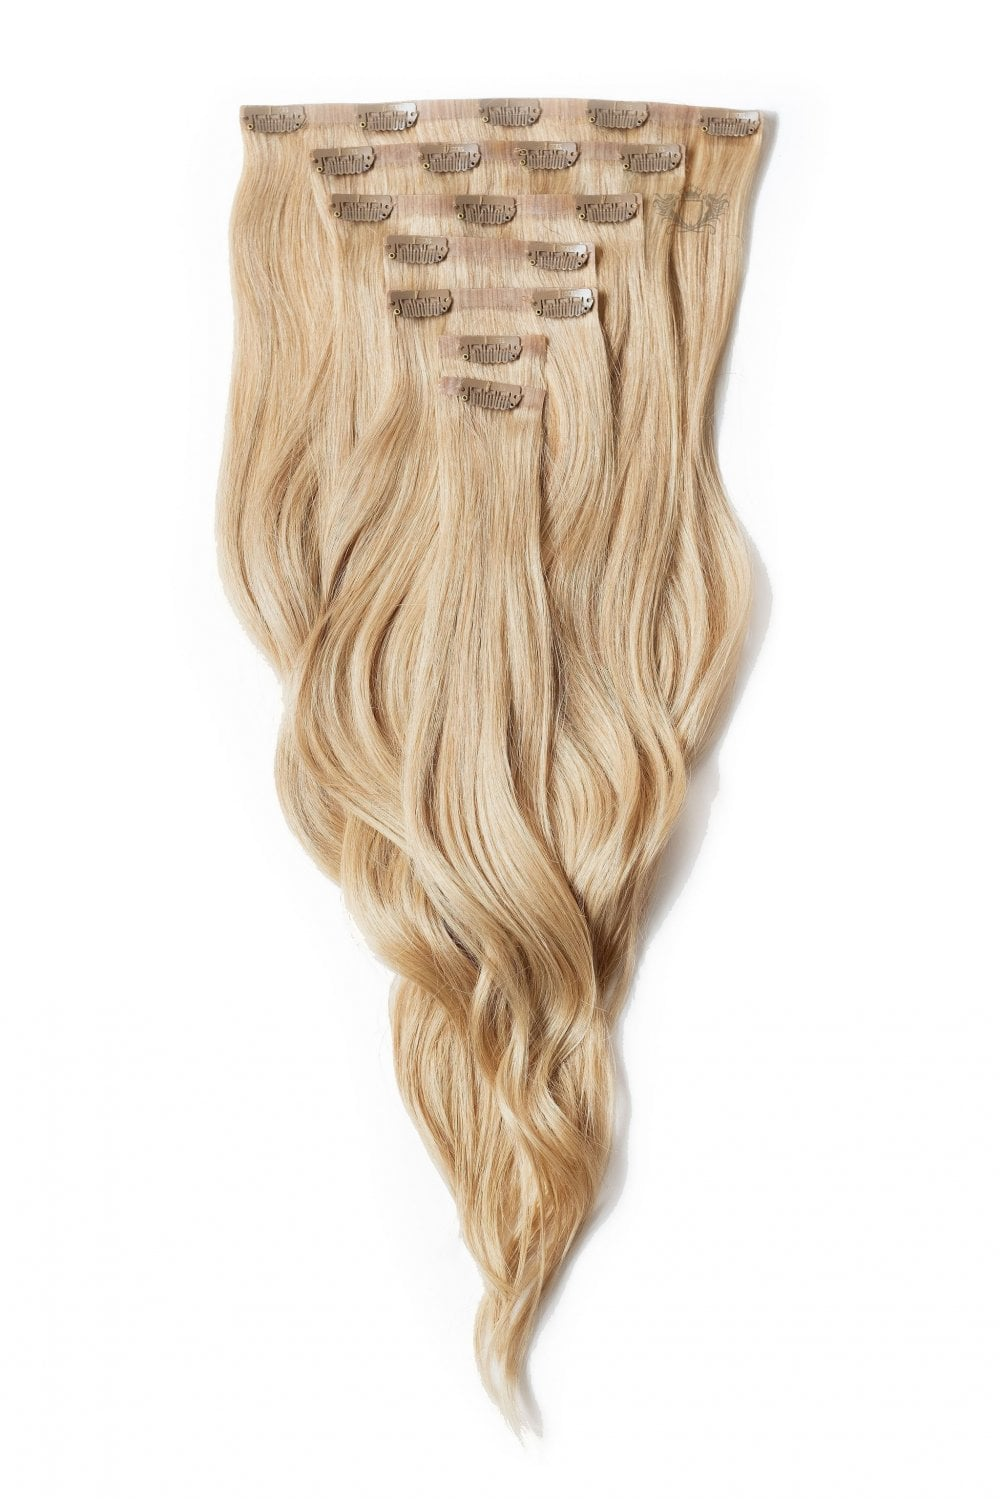 Caramel Regular Seamless Clip In Human Hair Extensions 125g